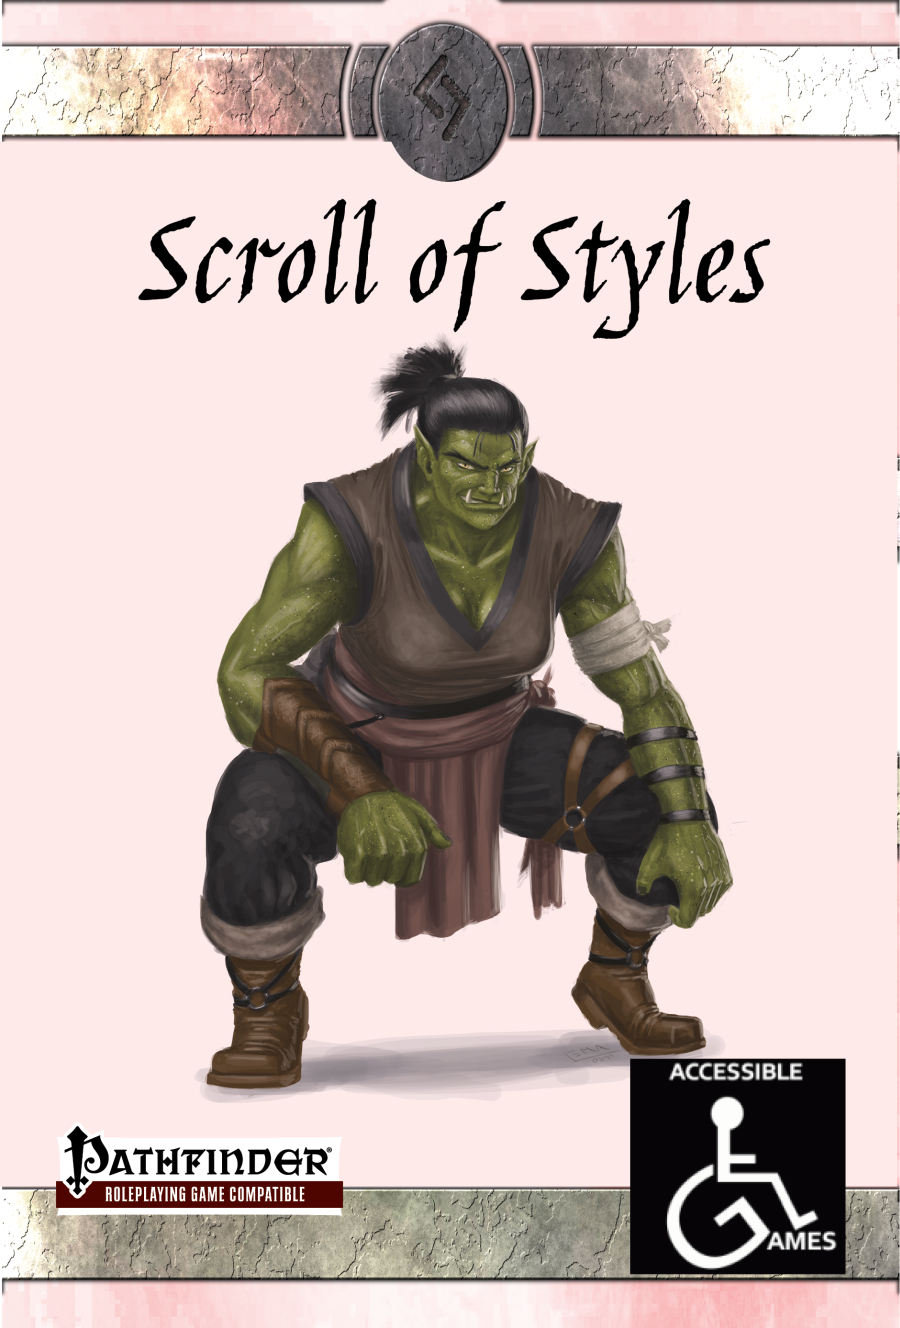 Scroll of Styles - Accessible Games   DriveThruRPG com